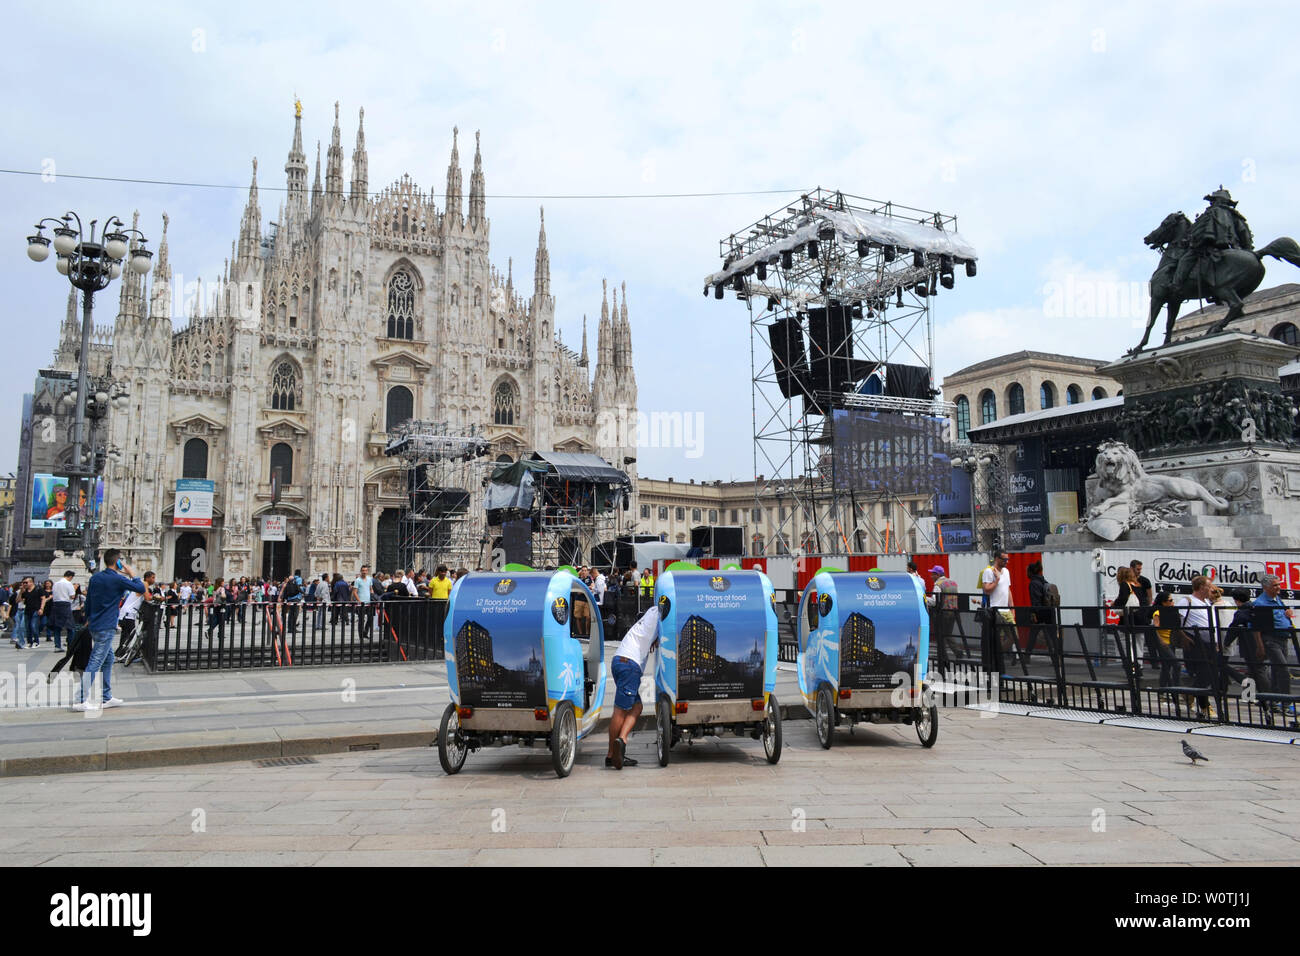 "Milan/Italy - June 9, 2016: Modern rickshaws parked at the Duomo square during ""Radio Italia live al concerto"" event at piazza Duomo. Stock Photo"